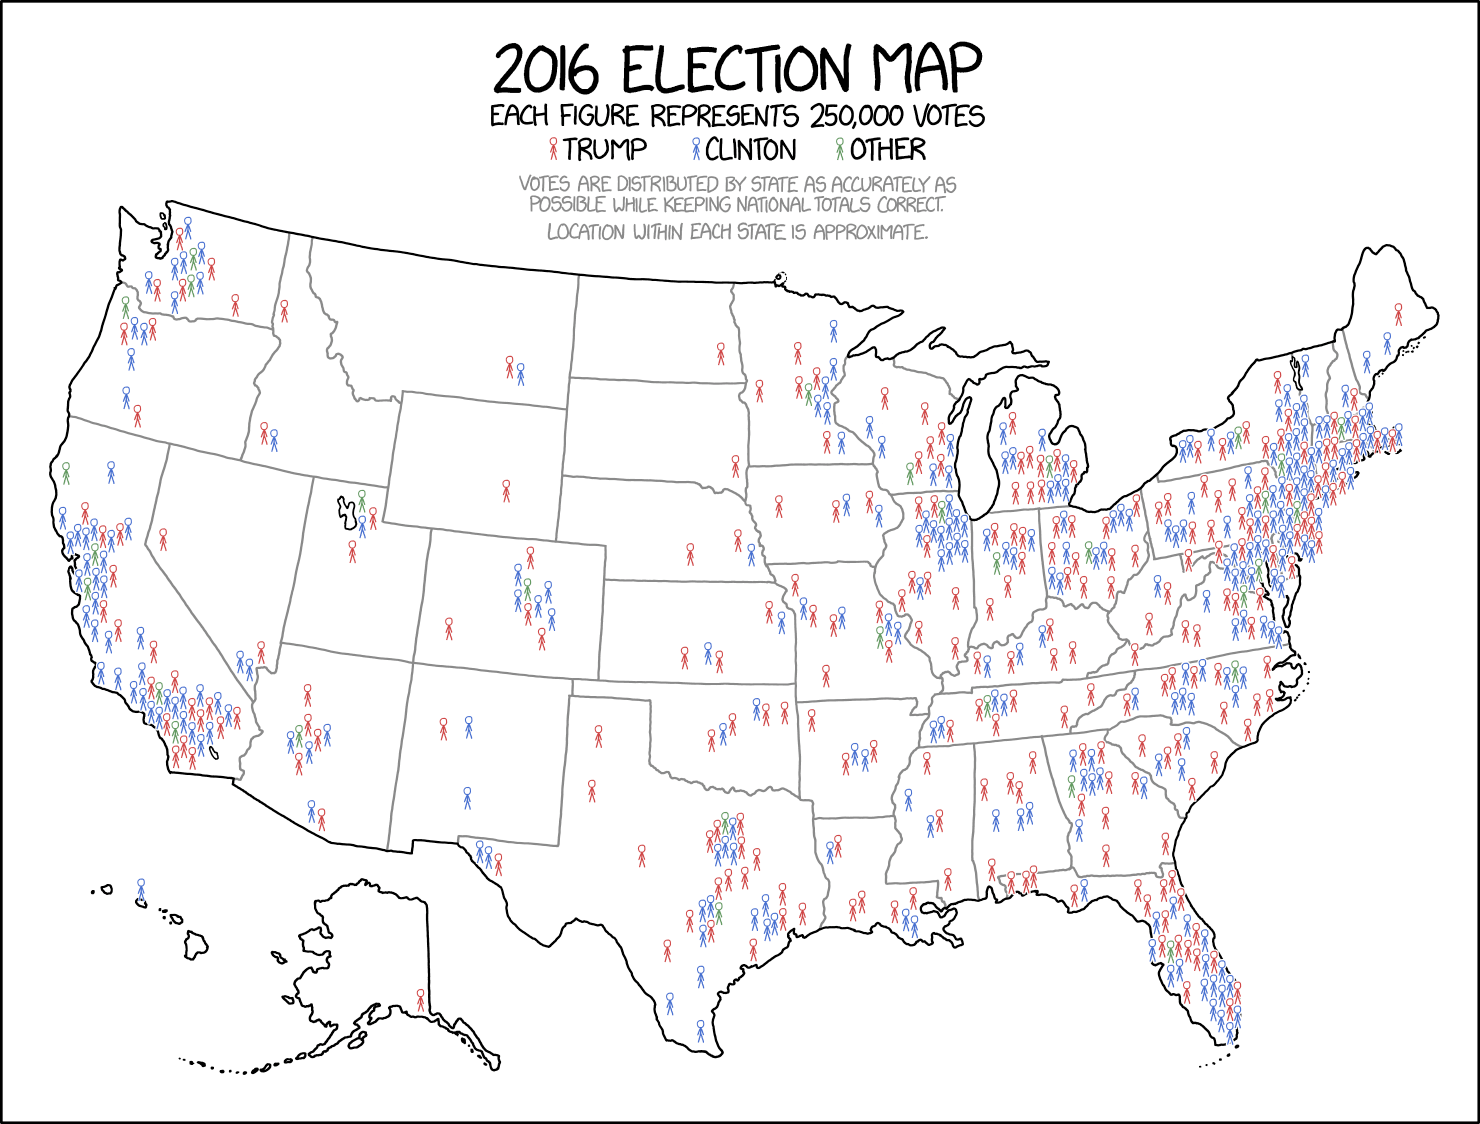 A Smart Take on Election Maps